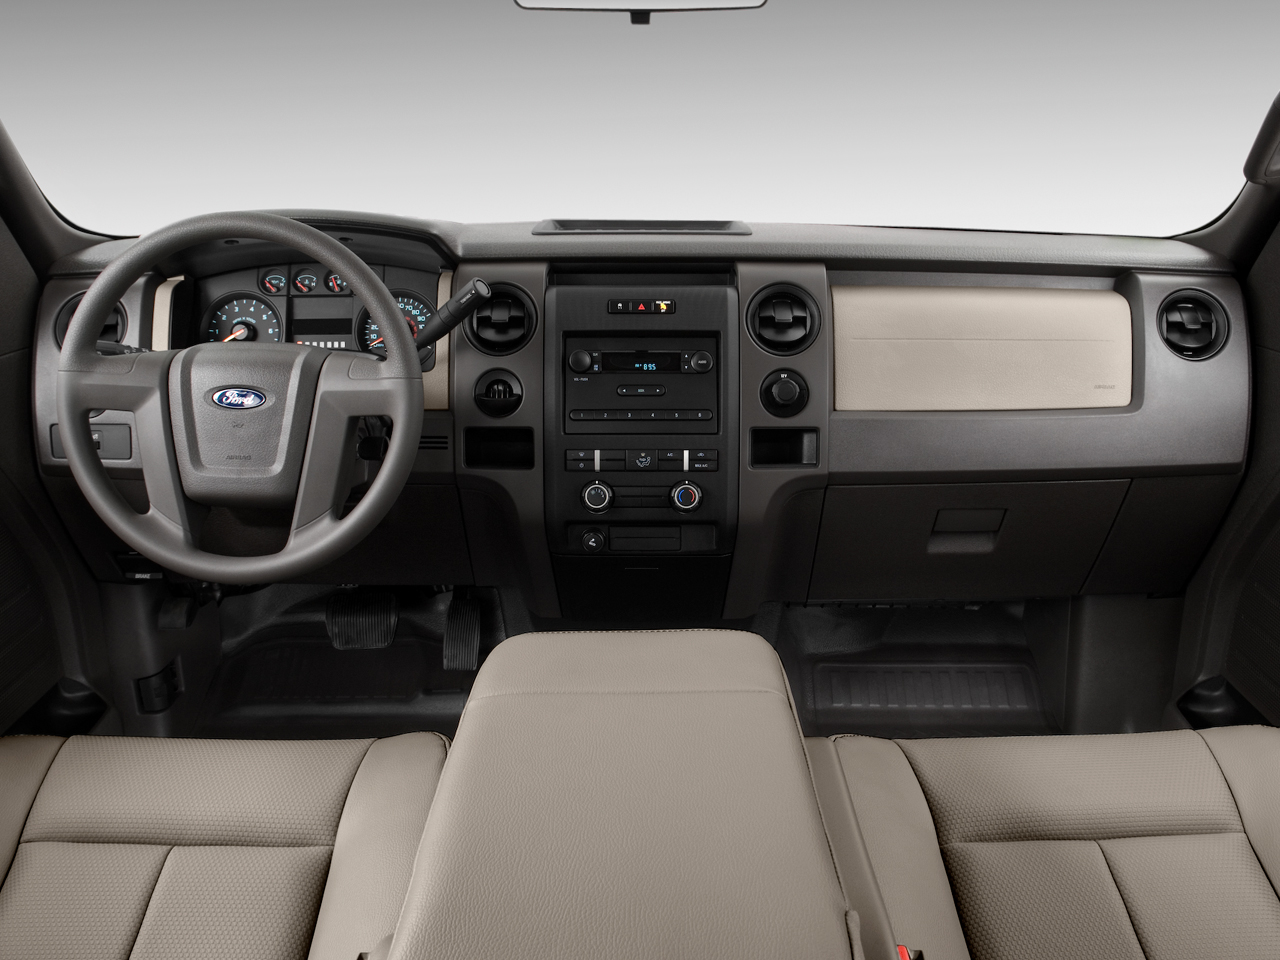 Truck Cab Inside >> 2009 Ford F150 - Ford Pickup Truck Review - Automobile Magazine